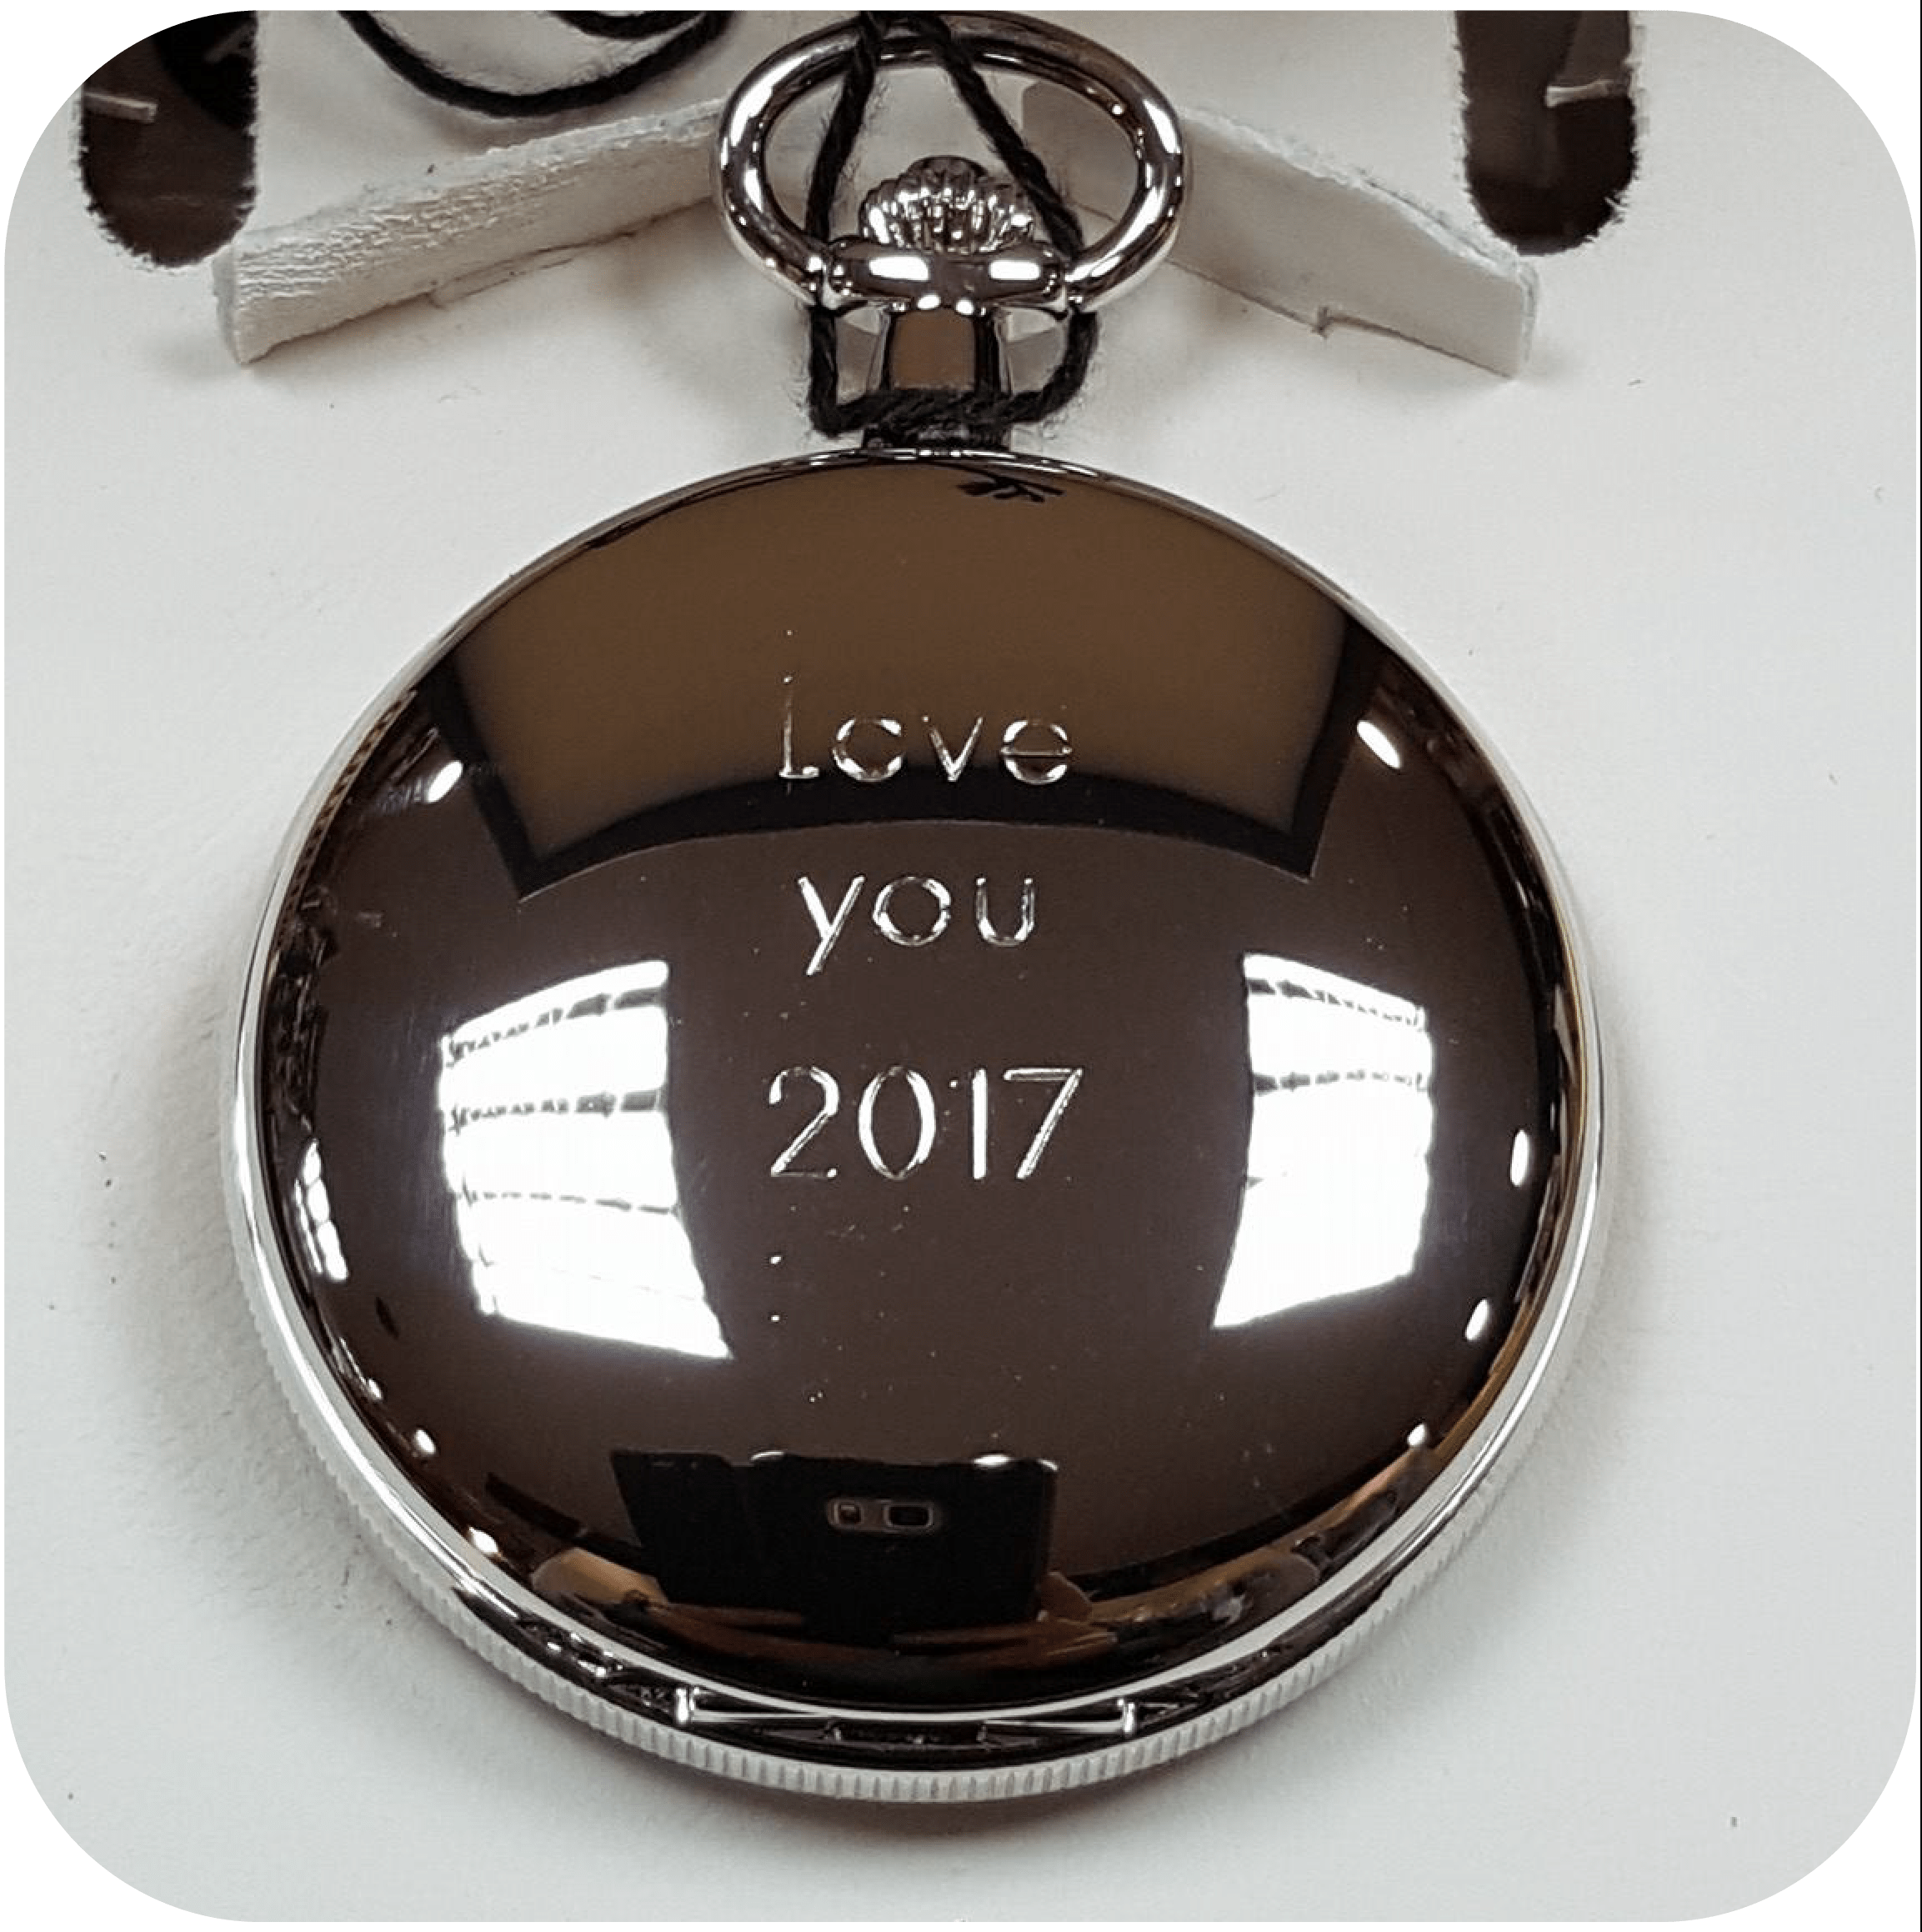 engraving service, personalised gifts, Birthday, Anniversary, Bamber Bridge, Blackburn, Chorley, Leyland, Buckshaw Village